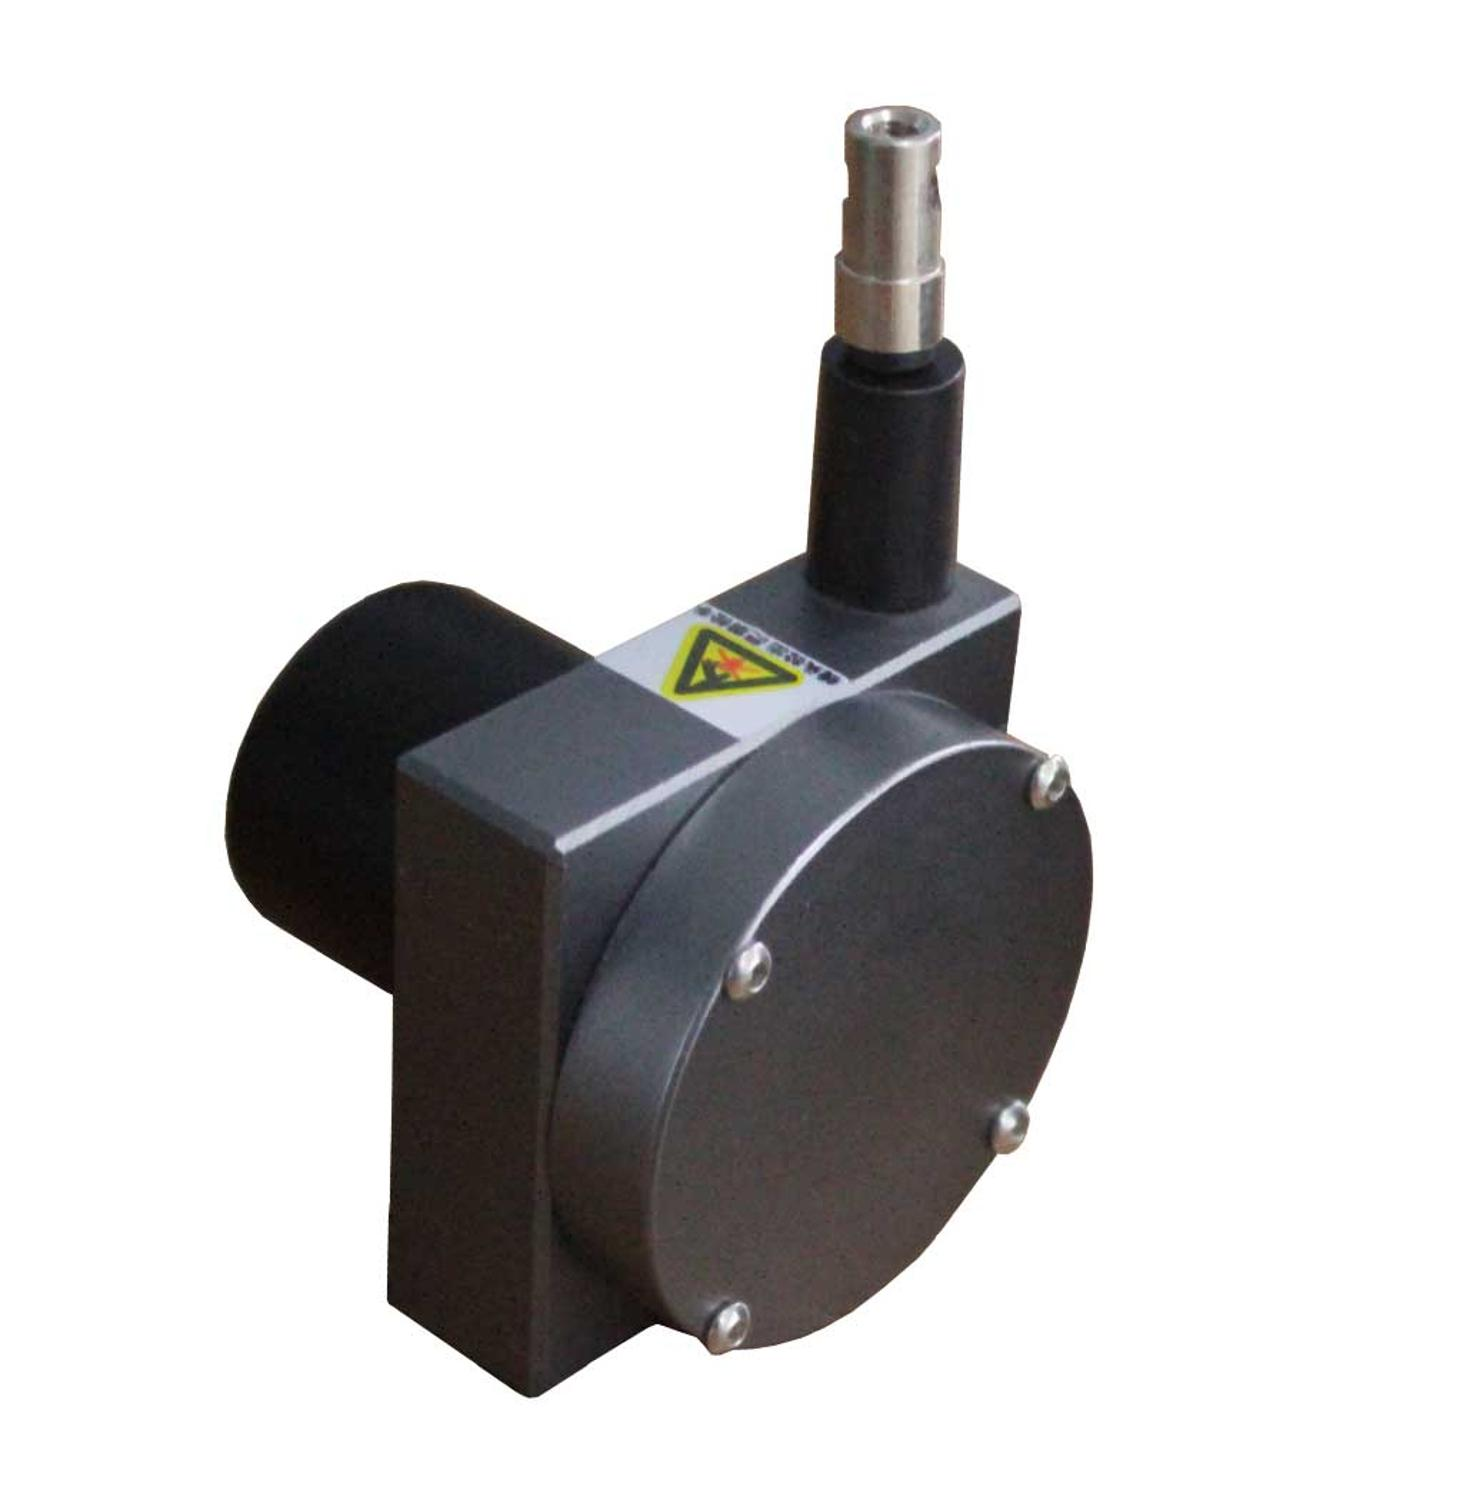 WXY60-LWXY80-L Drawstring Displacement Cable Sensor Encoder Gate Opener High Precision 4-20mA Current Signal